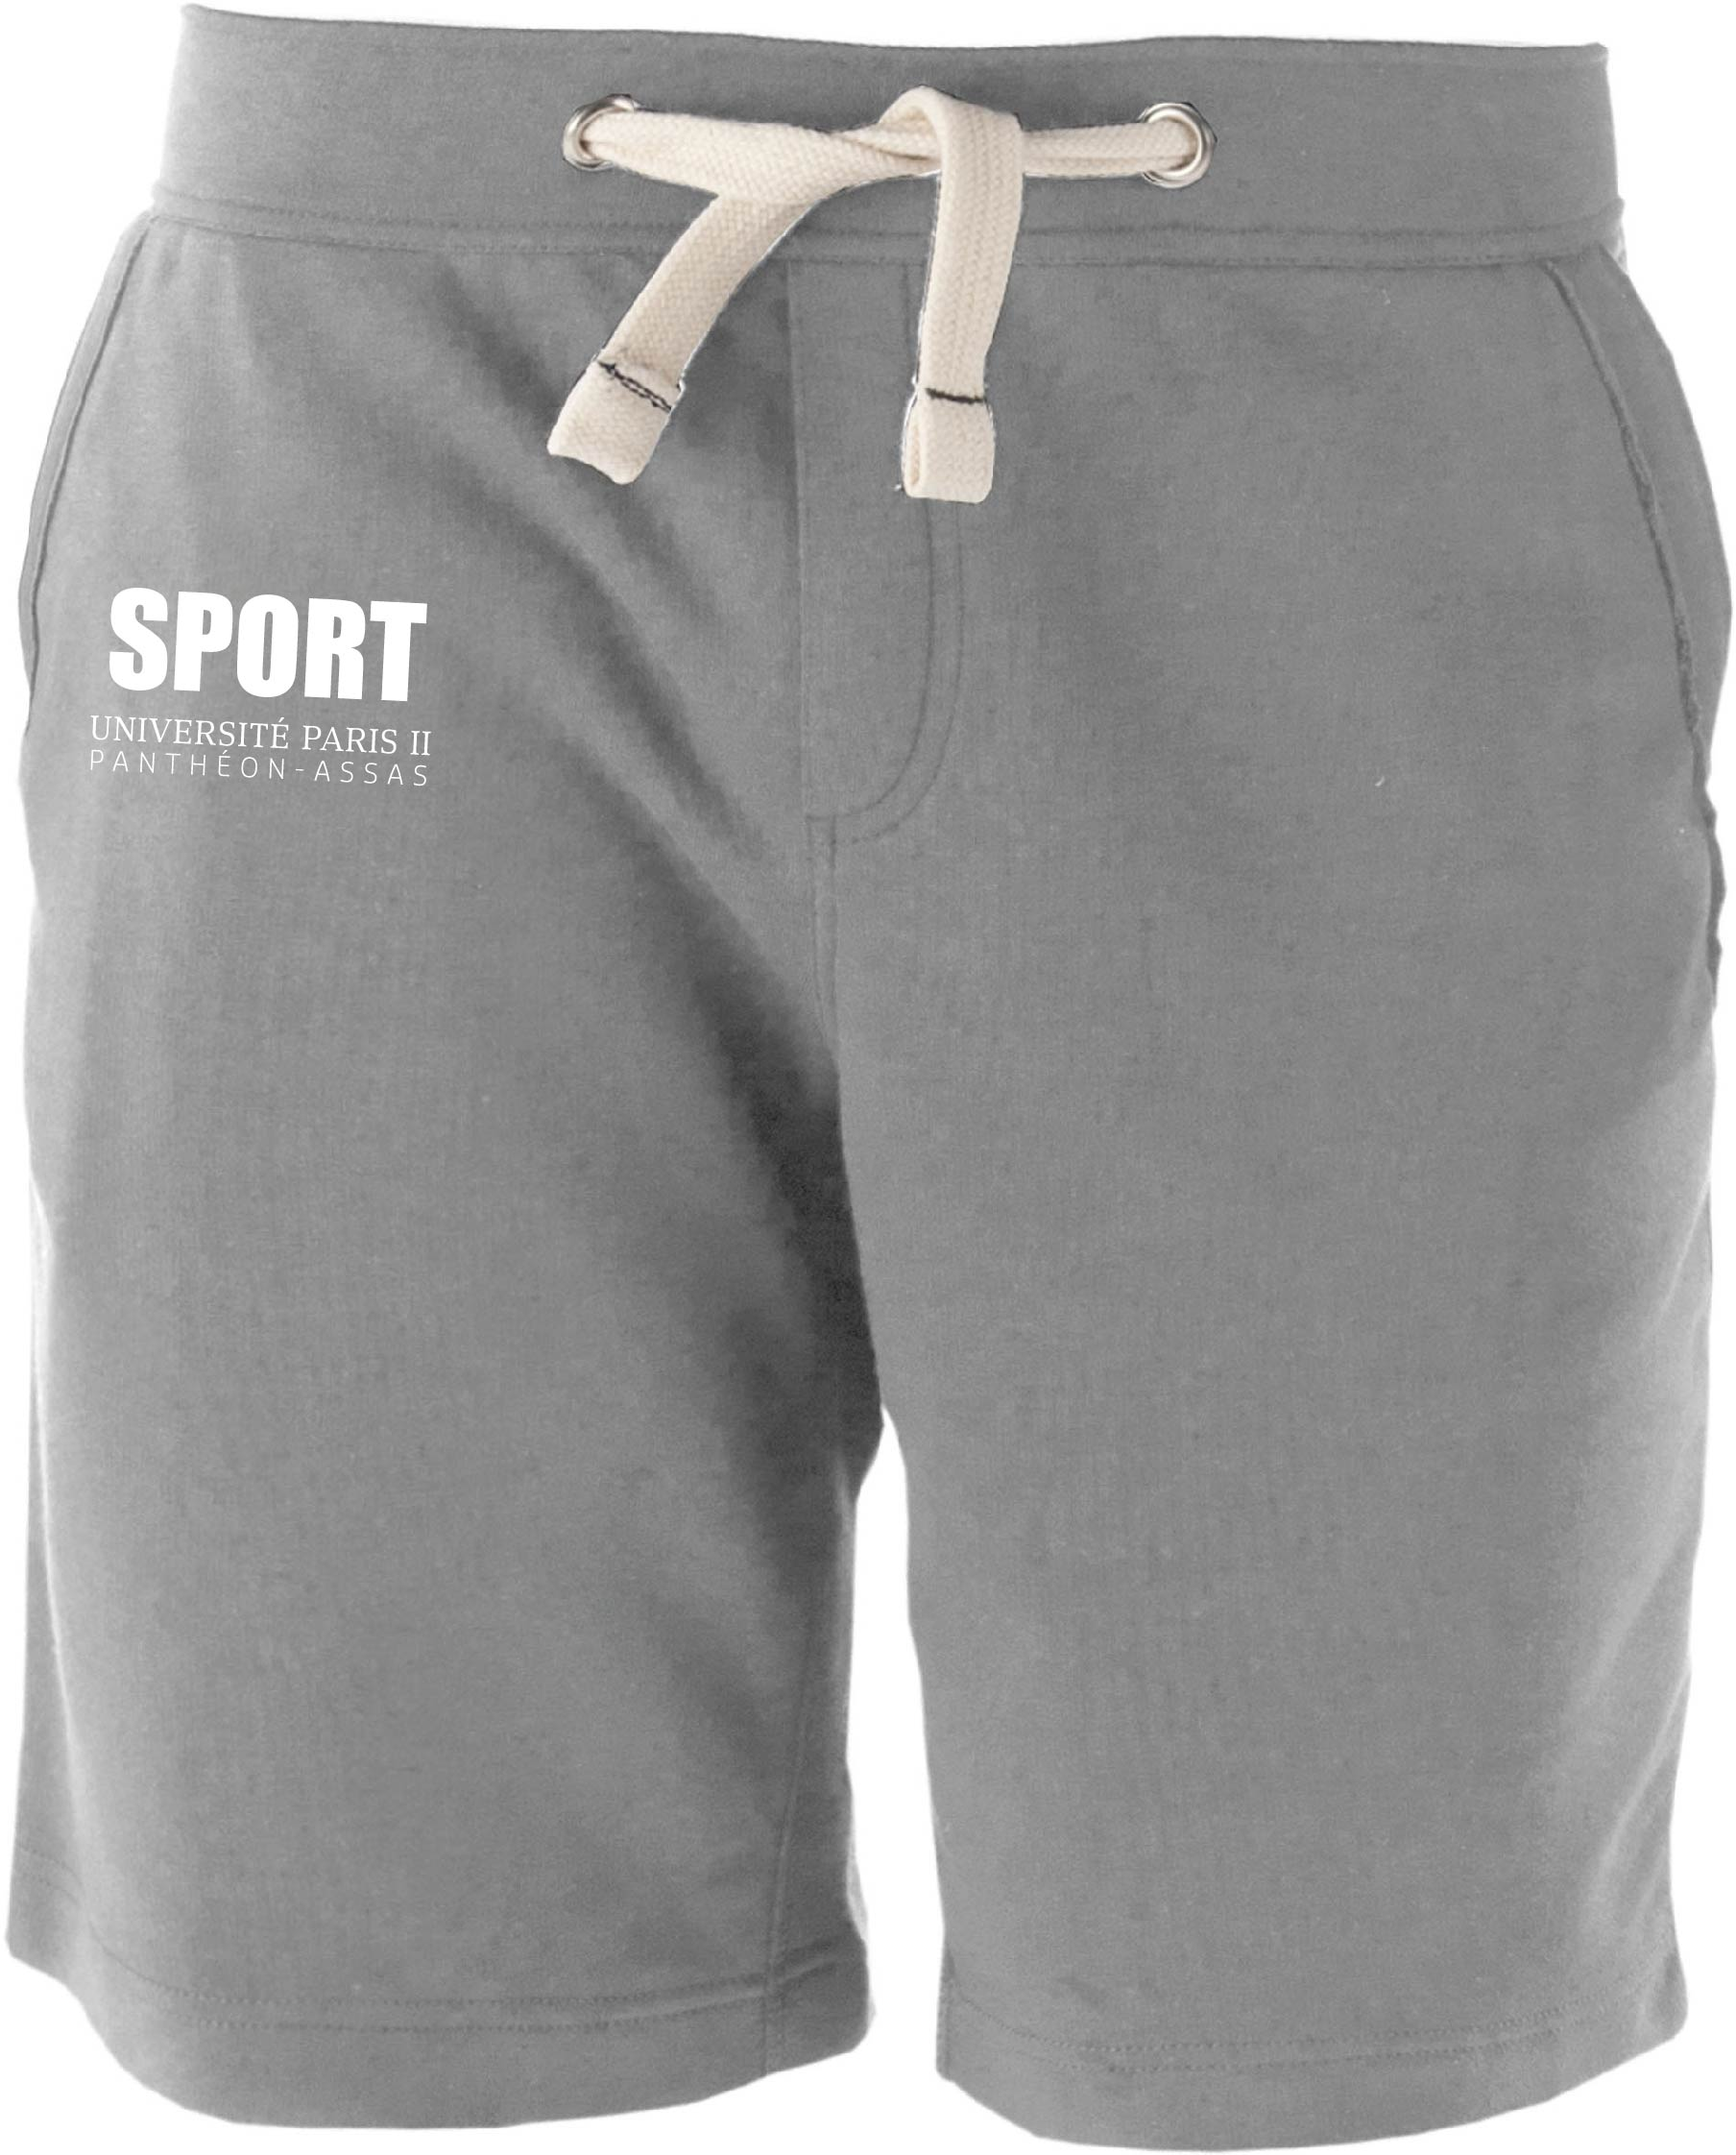 Short AS Paris II - HANDBALL Gris Oxford Grey